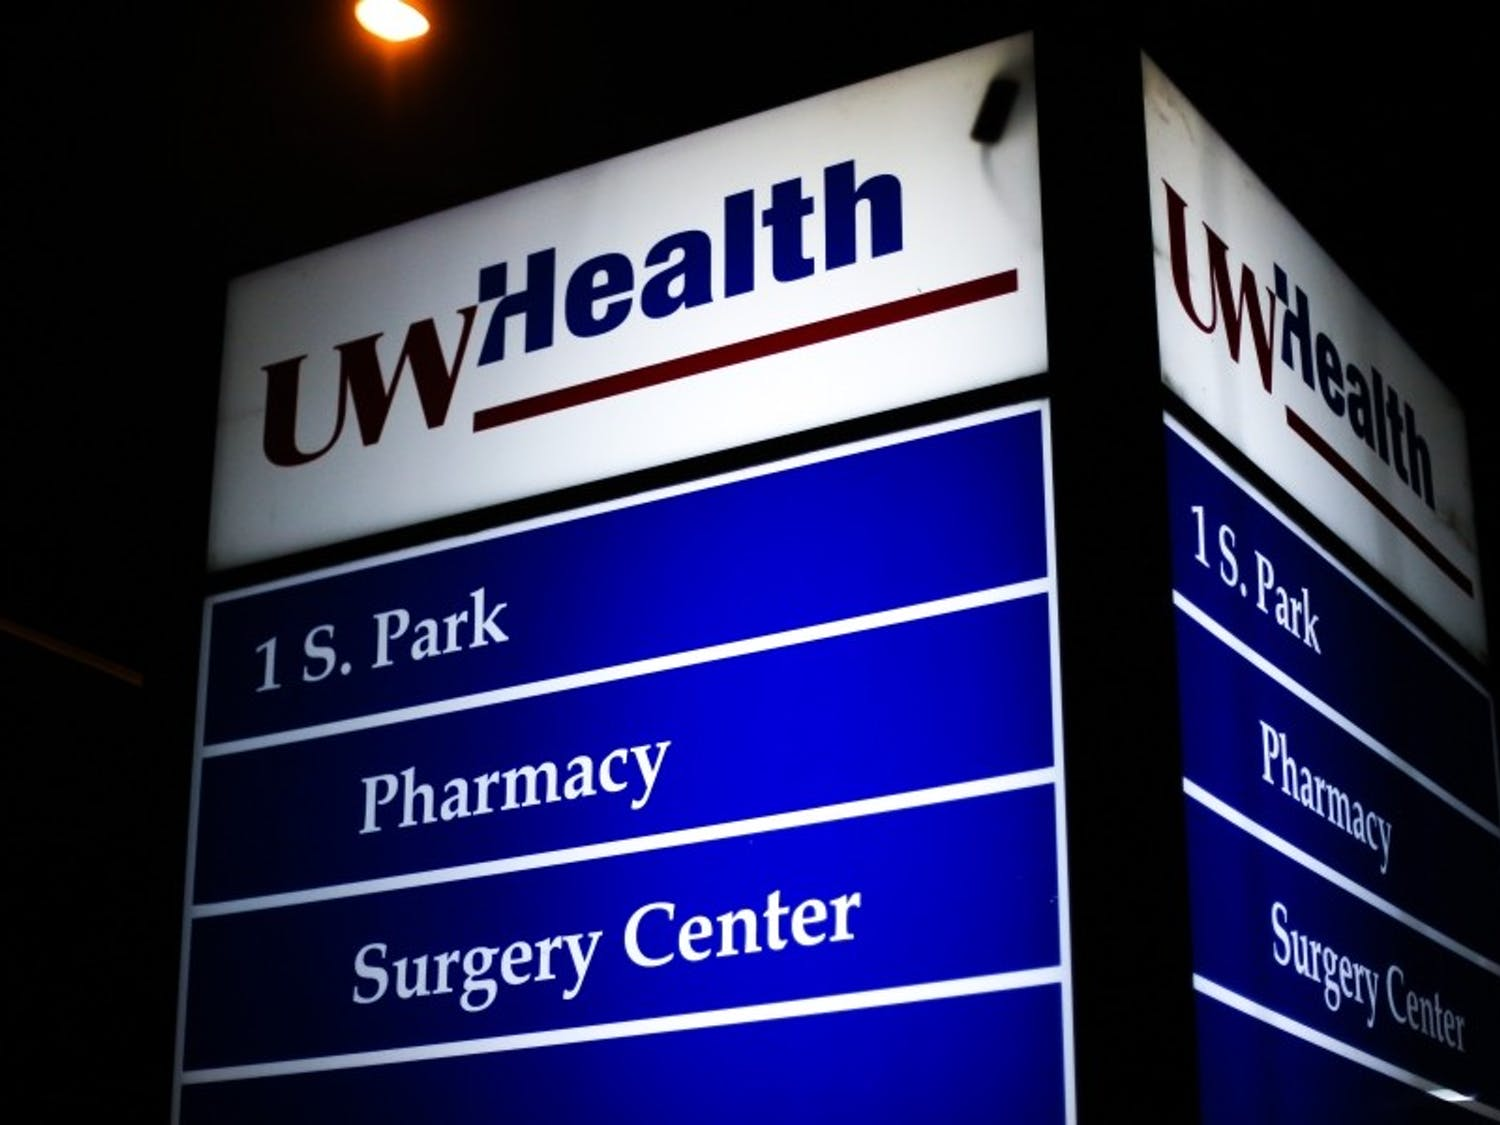 A female UW Health anesthesiologist filed suit against a former department head and UW System Board of regents, citing unequal pay, opportunity and abuse for female doctors.